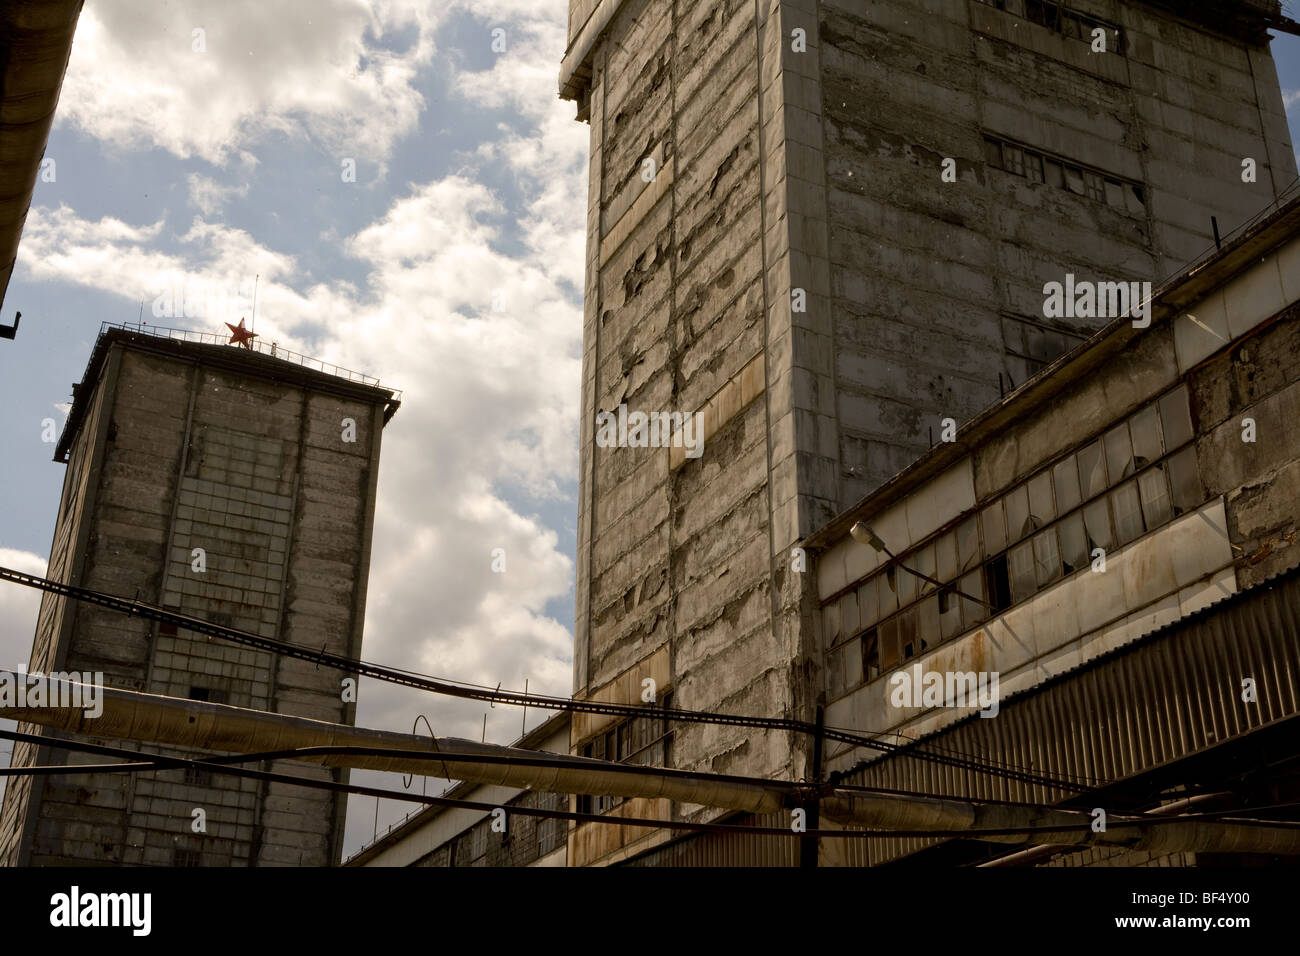 abandoned factory tagil urals russia Stock Photo, Royalty Free Image ... for Abandoned Factory Russia  66pct